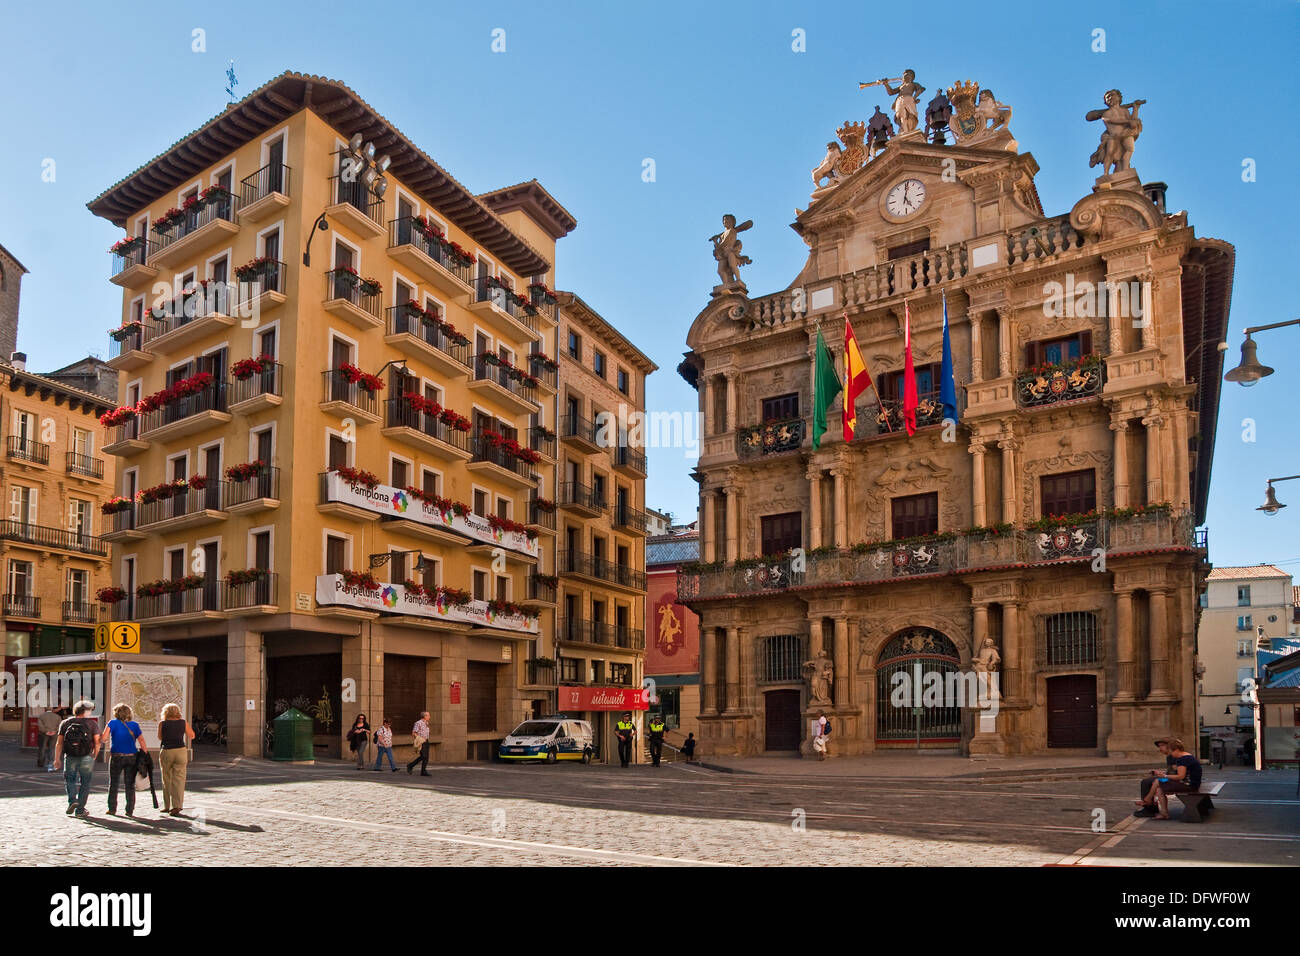 City Hall And Modern Apartment Building In The Plaza Consistorial Pamplona